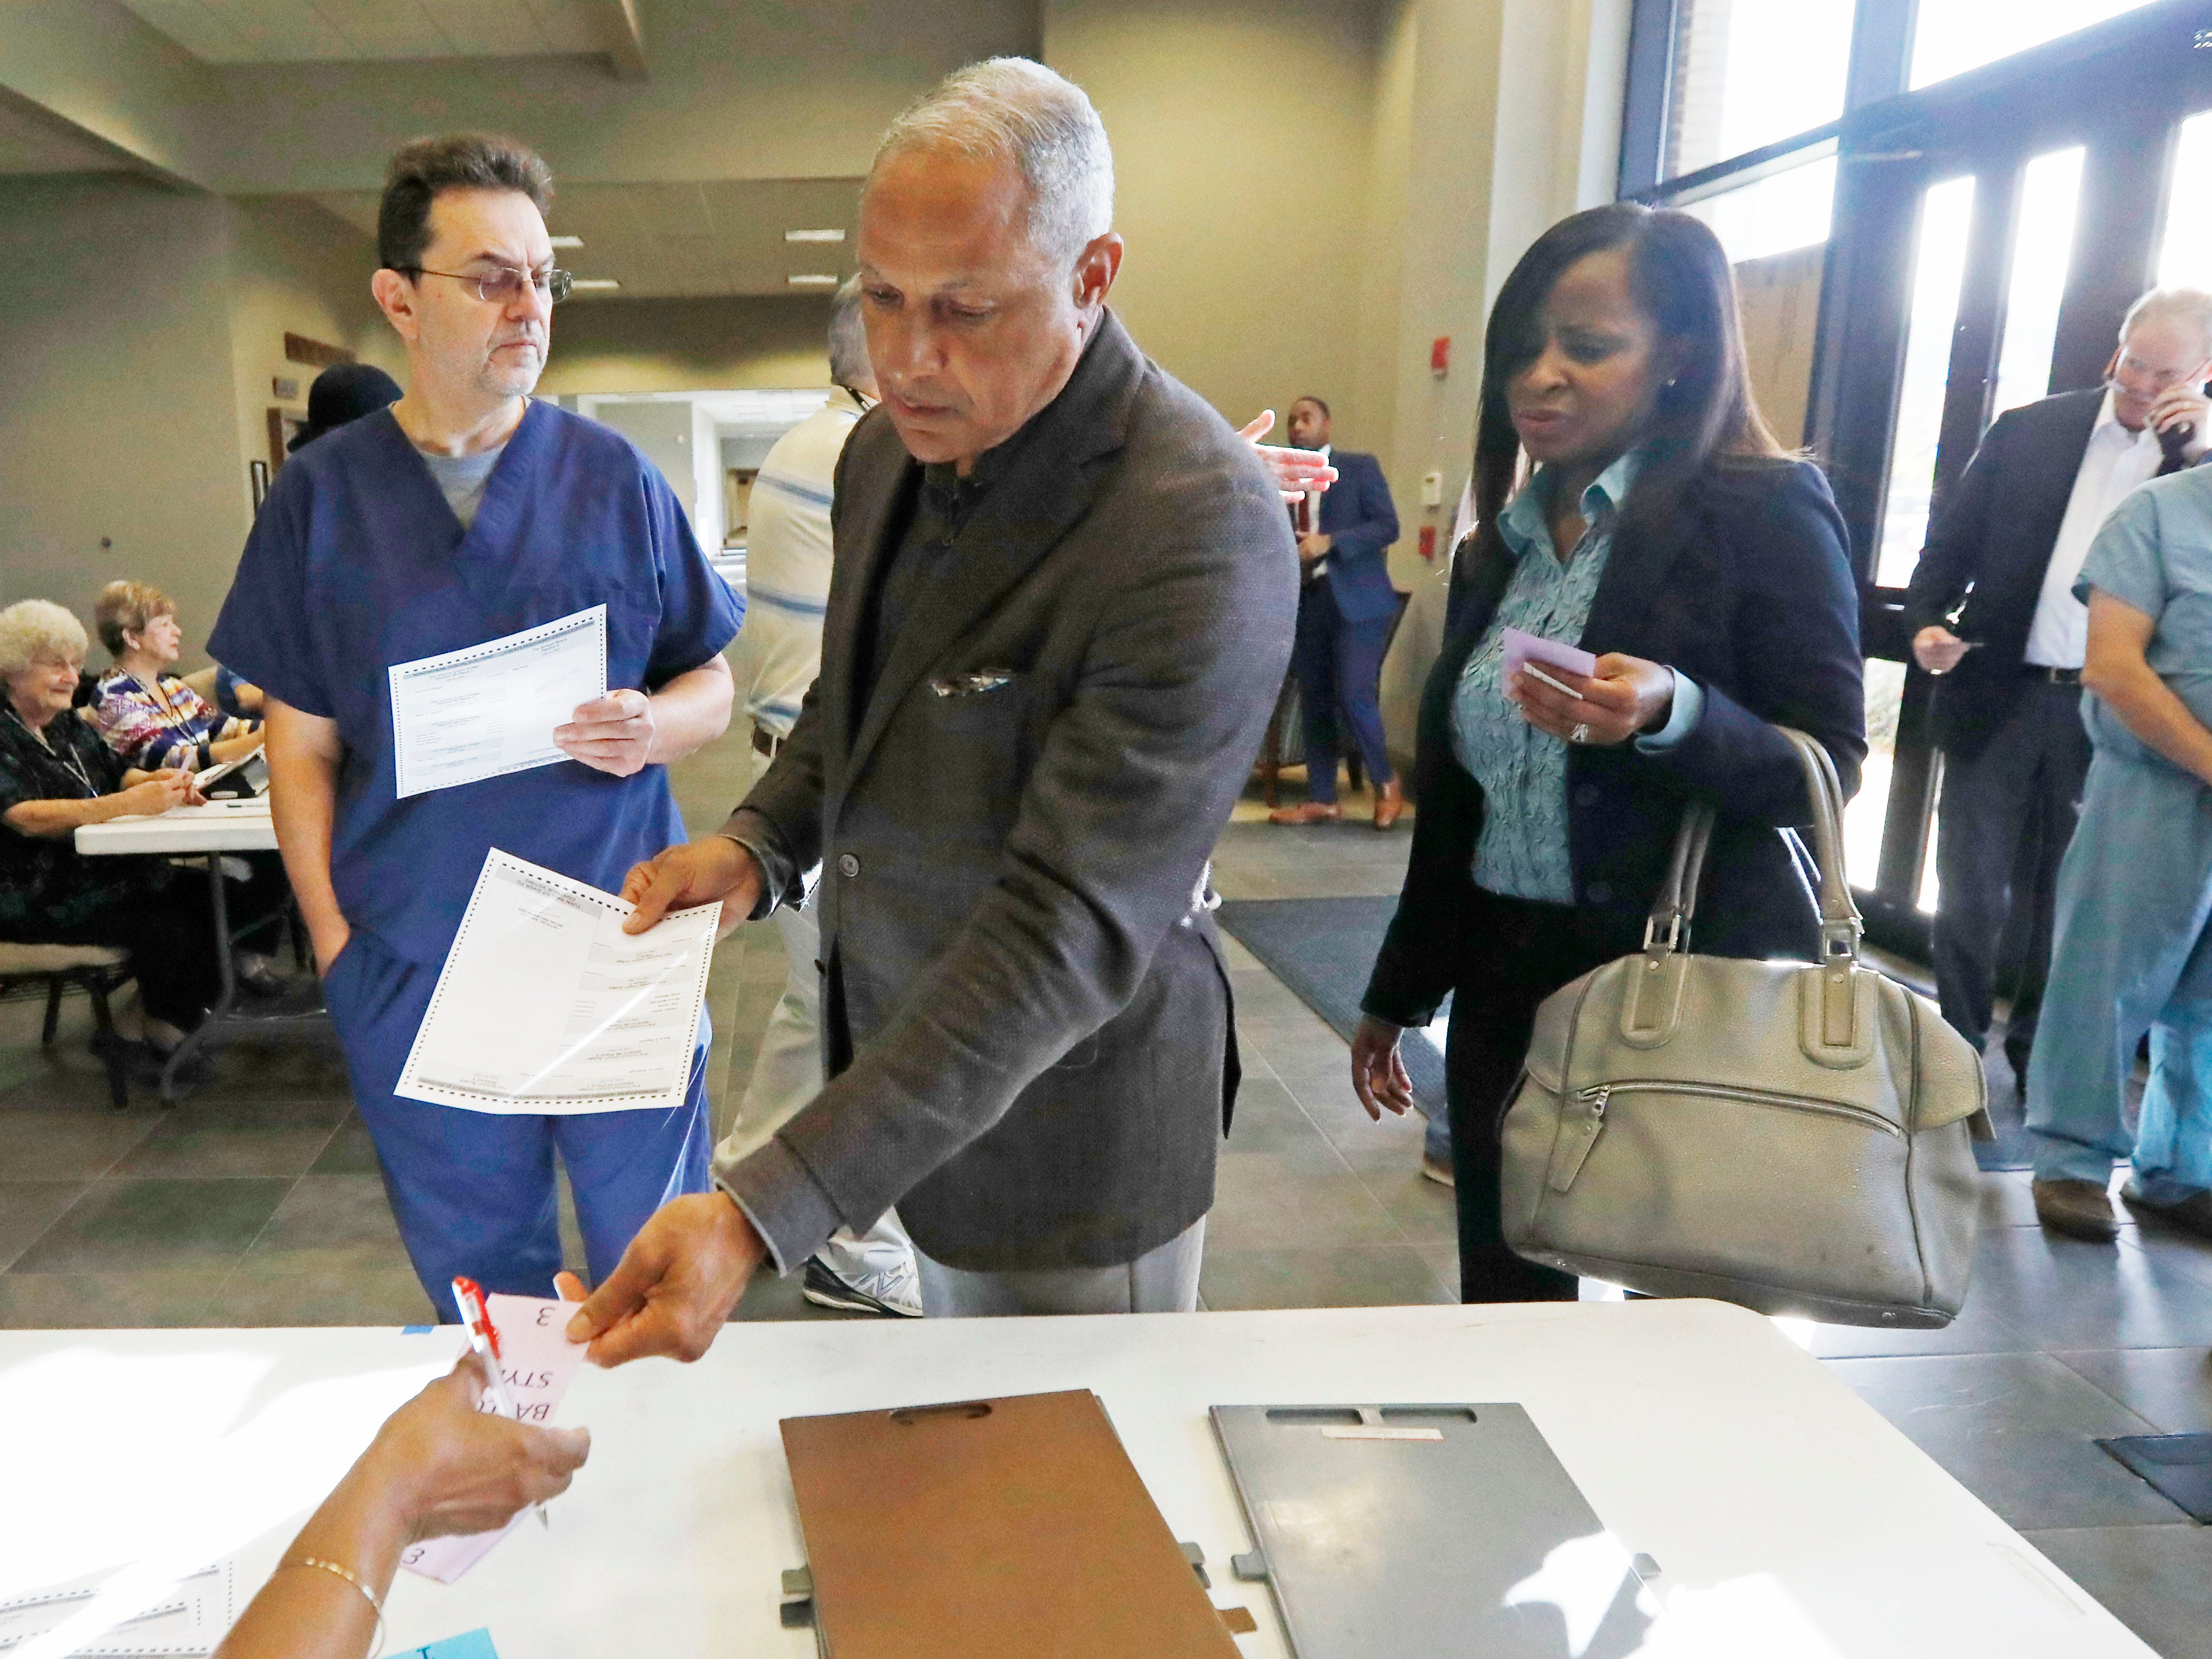 Mississippi Democratic Senatorial candidate Mike Espy, who is seeking to unseat appointed Sen. Cindy Hyde-Smith, R-Miss., hands a poll worker his voting voucher in order to receive a paper ballot, Tuesday, Nov. 6, 2018 in Ridgeland, Miss., as his wife Portia Ballard Espy, right, looks on.